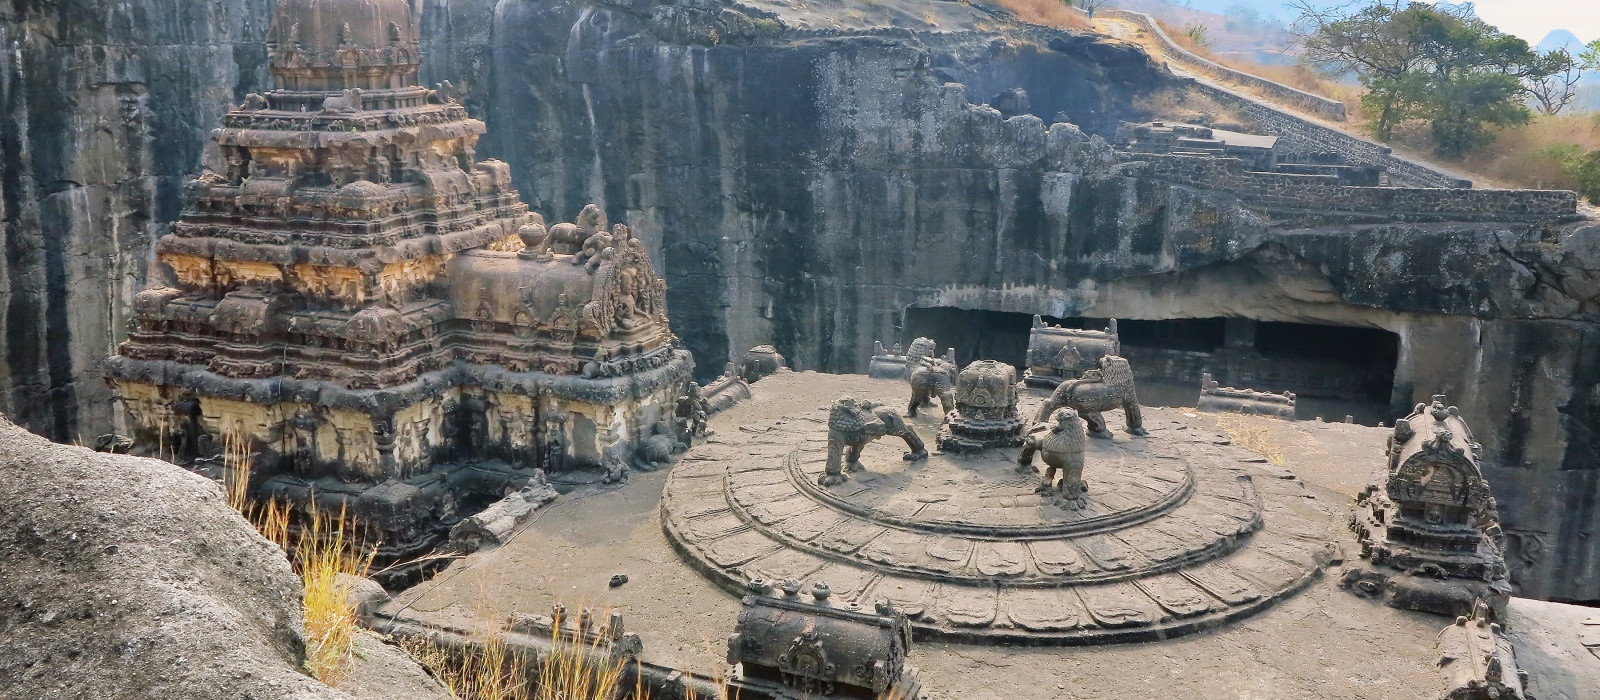 Kailas Temple, Ellora Caves, India